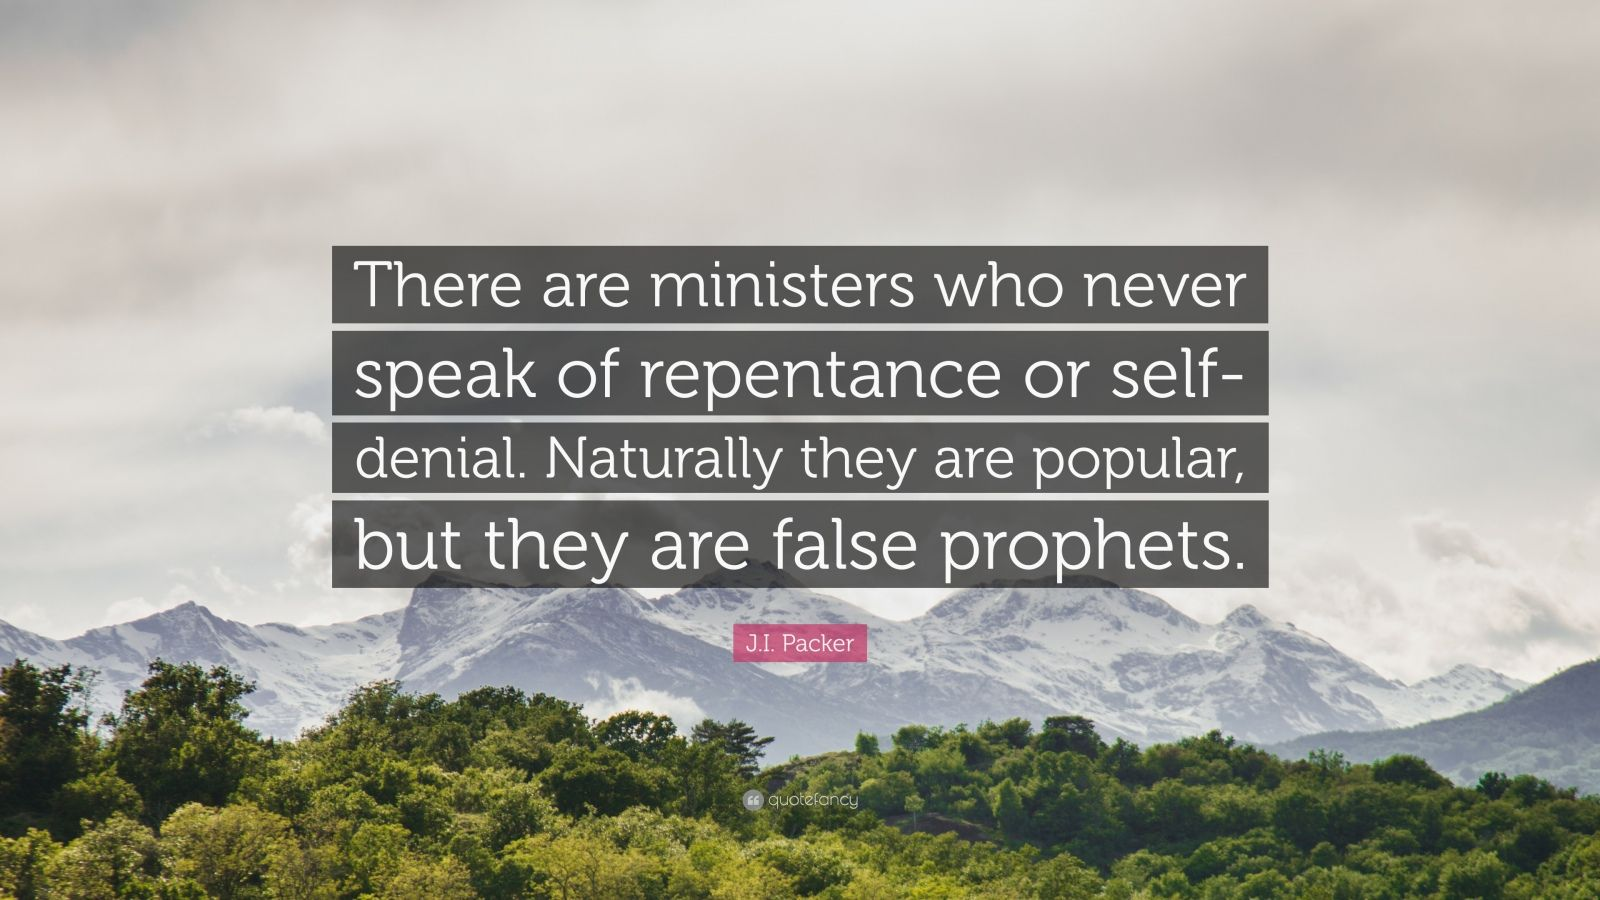 """J.I. Packer Quote: """"There are ministers who never speak of repentance or self-denial. Naturally they are popular, but they are false prophets."""""""